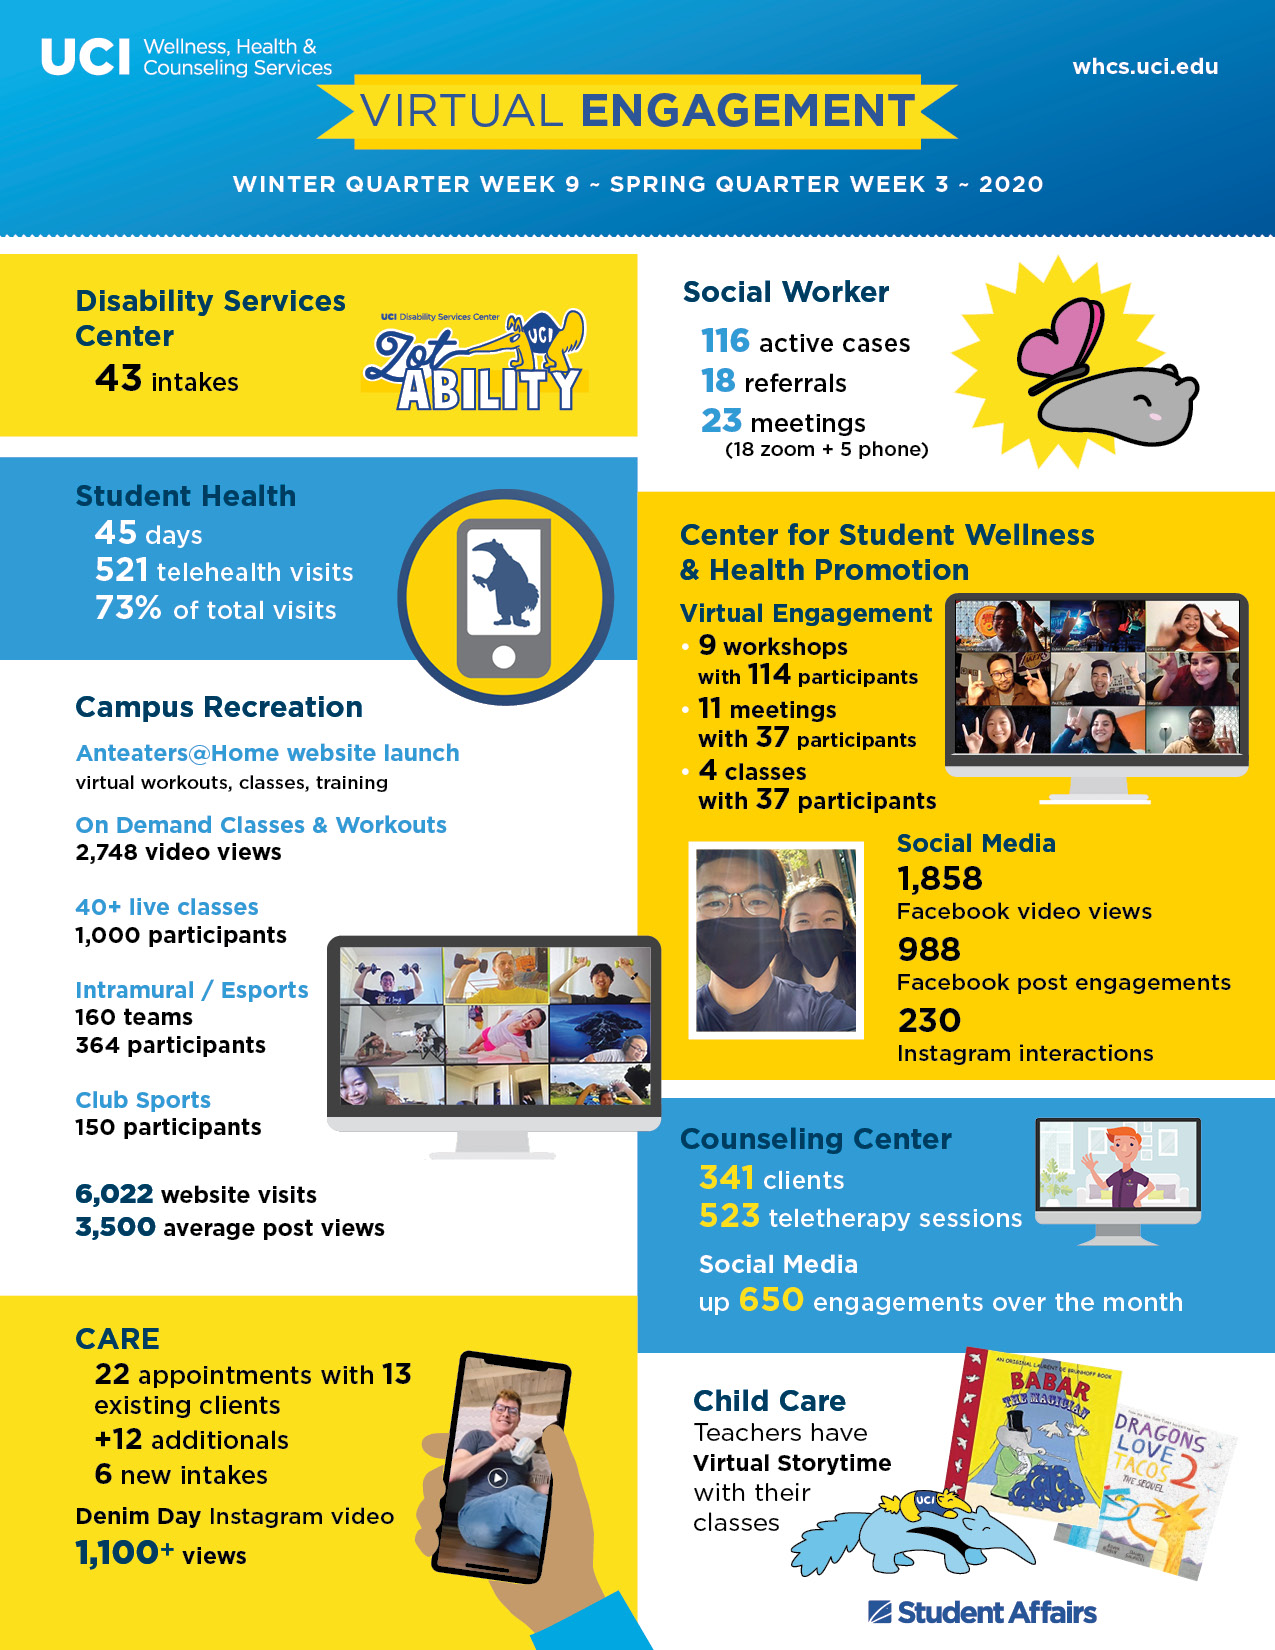 Wellness, Health & Counseling Services infographic